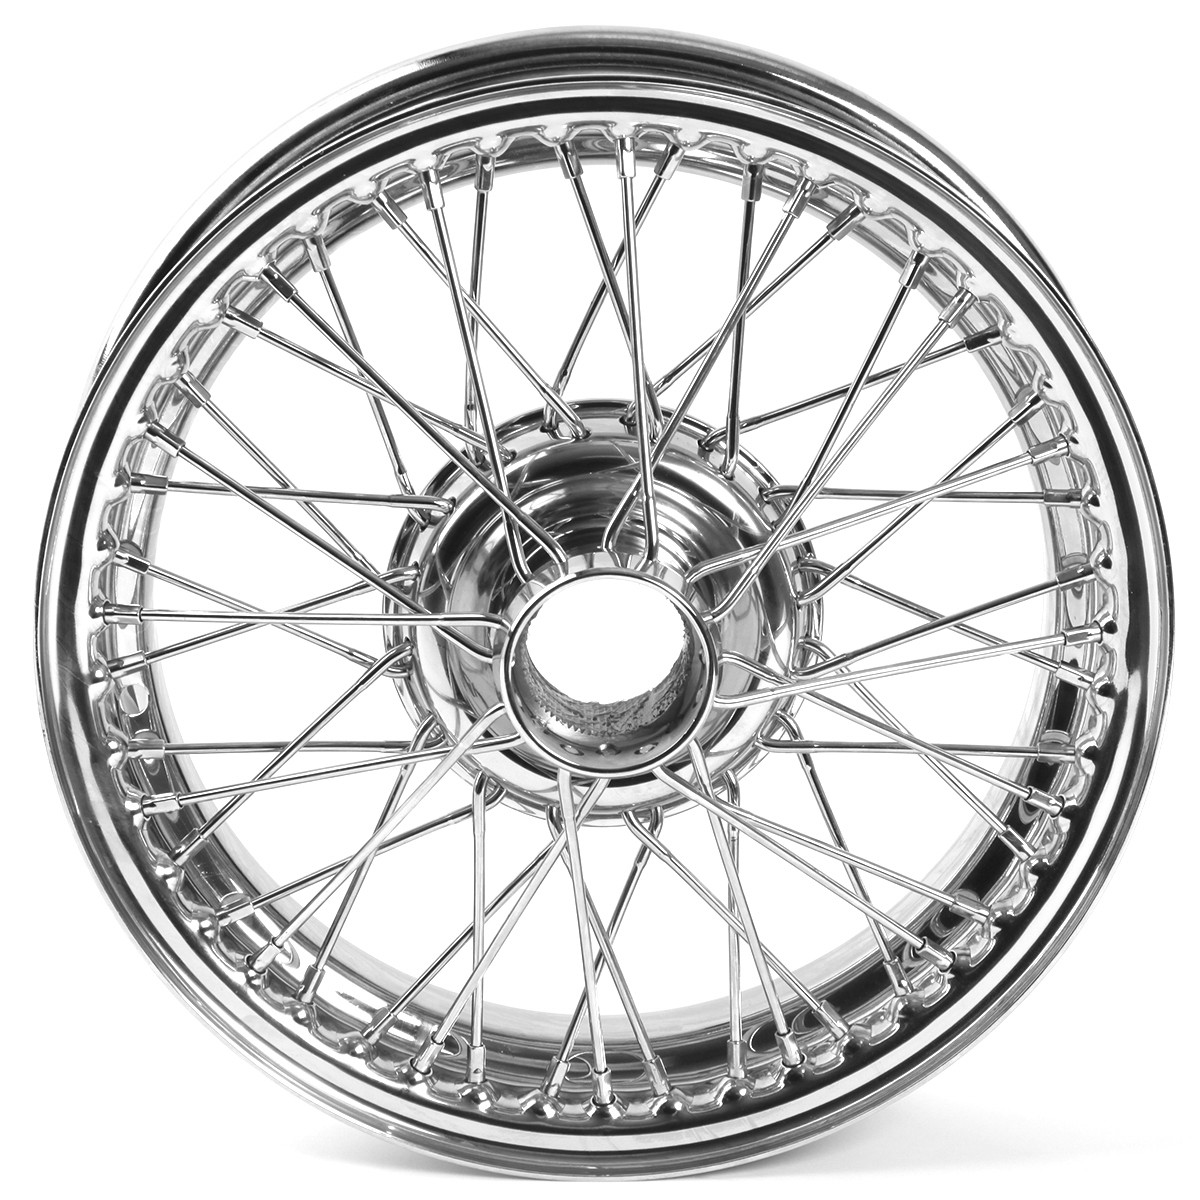 454 615 Wire Wheel Chrome 15 X4 48 Spoke Tube Type